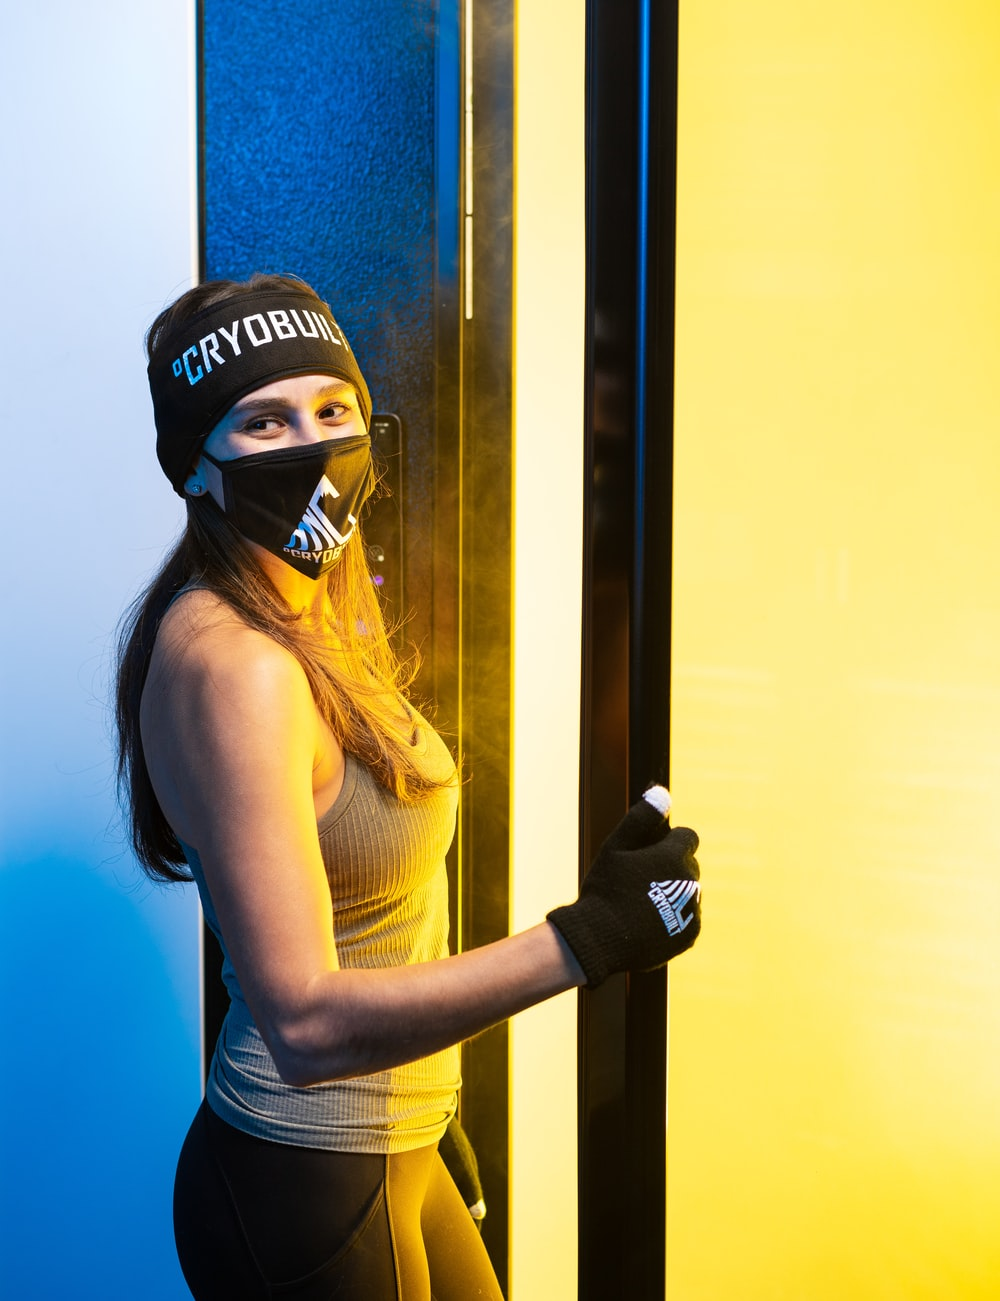 woman in yellow tank top wearing black and white helmet